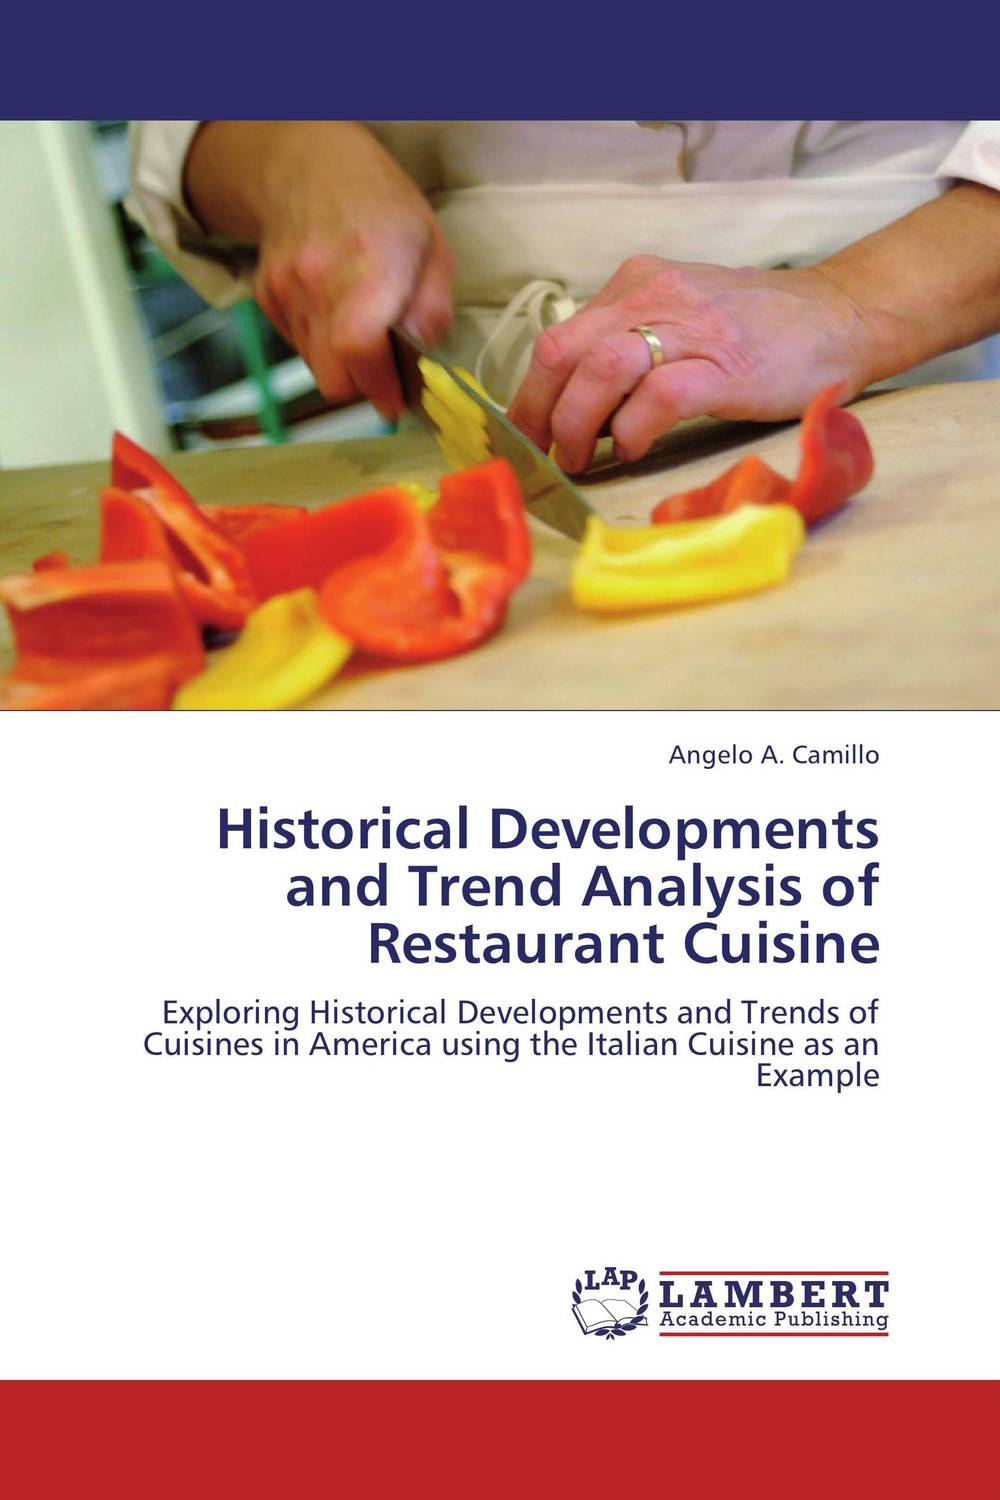 Historical Developments and Trend Analysis of Restaurant Cuisine teresian leadership a historical analysis